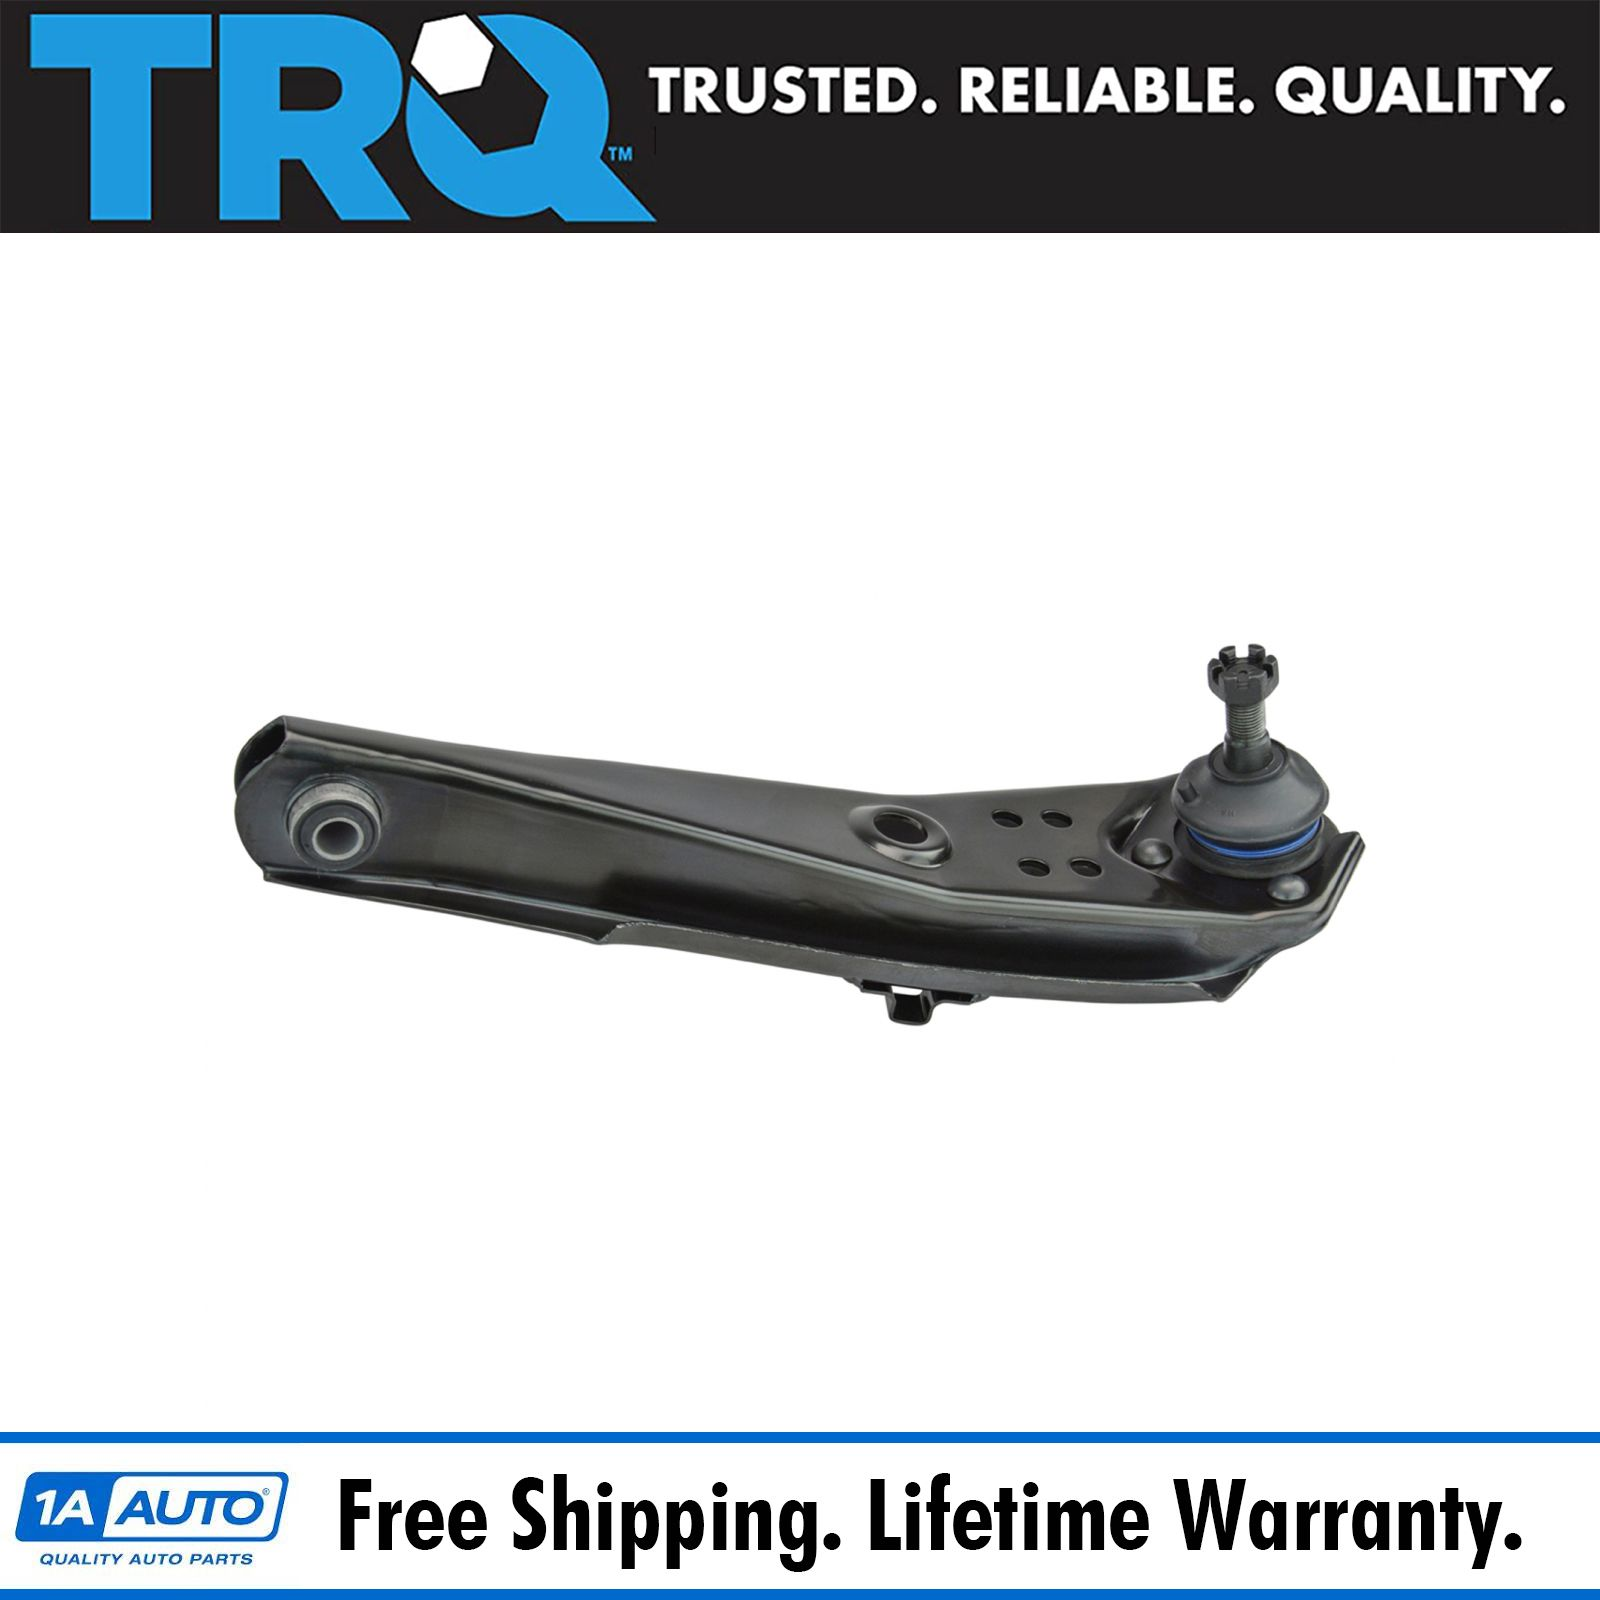 ranchero 1961-65 ranch wagon 1960 Front lower control arm ford falcon 1963-65